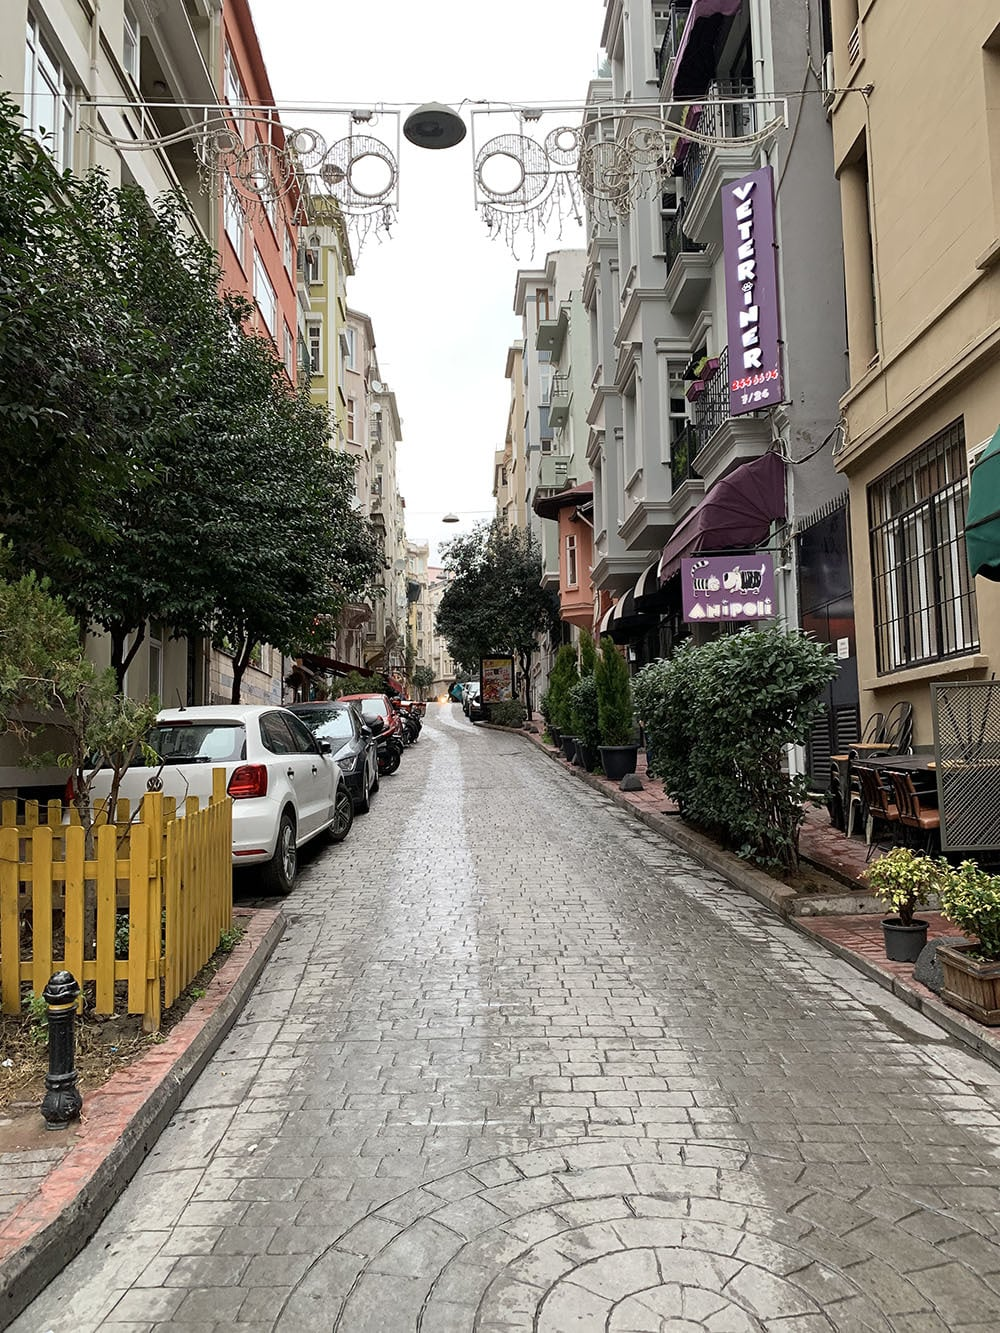 The hilly neighbourhood of Cihangir has a more residential feel than its neighbouring Galata area.